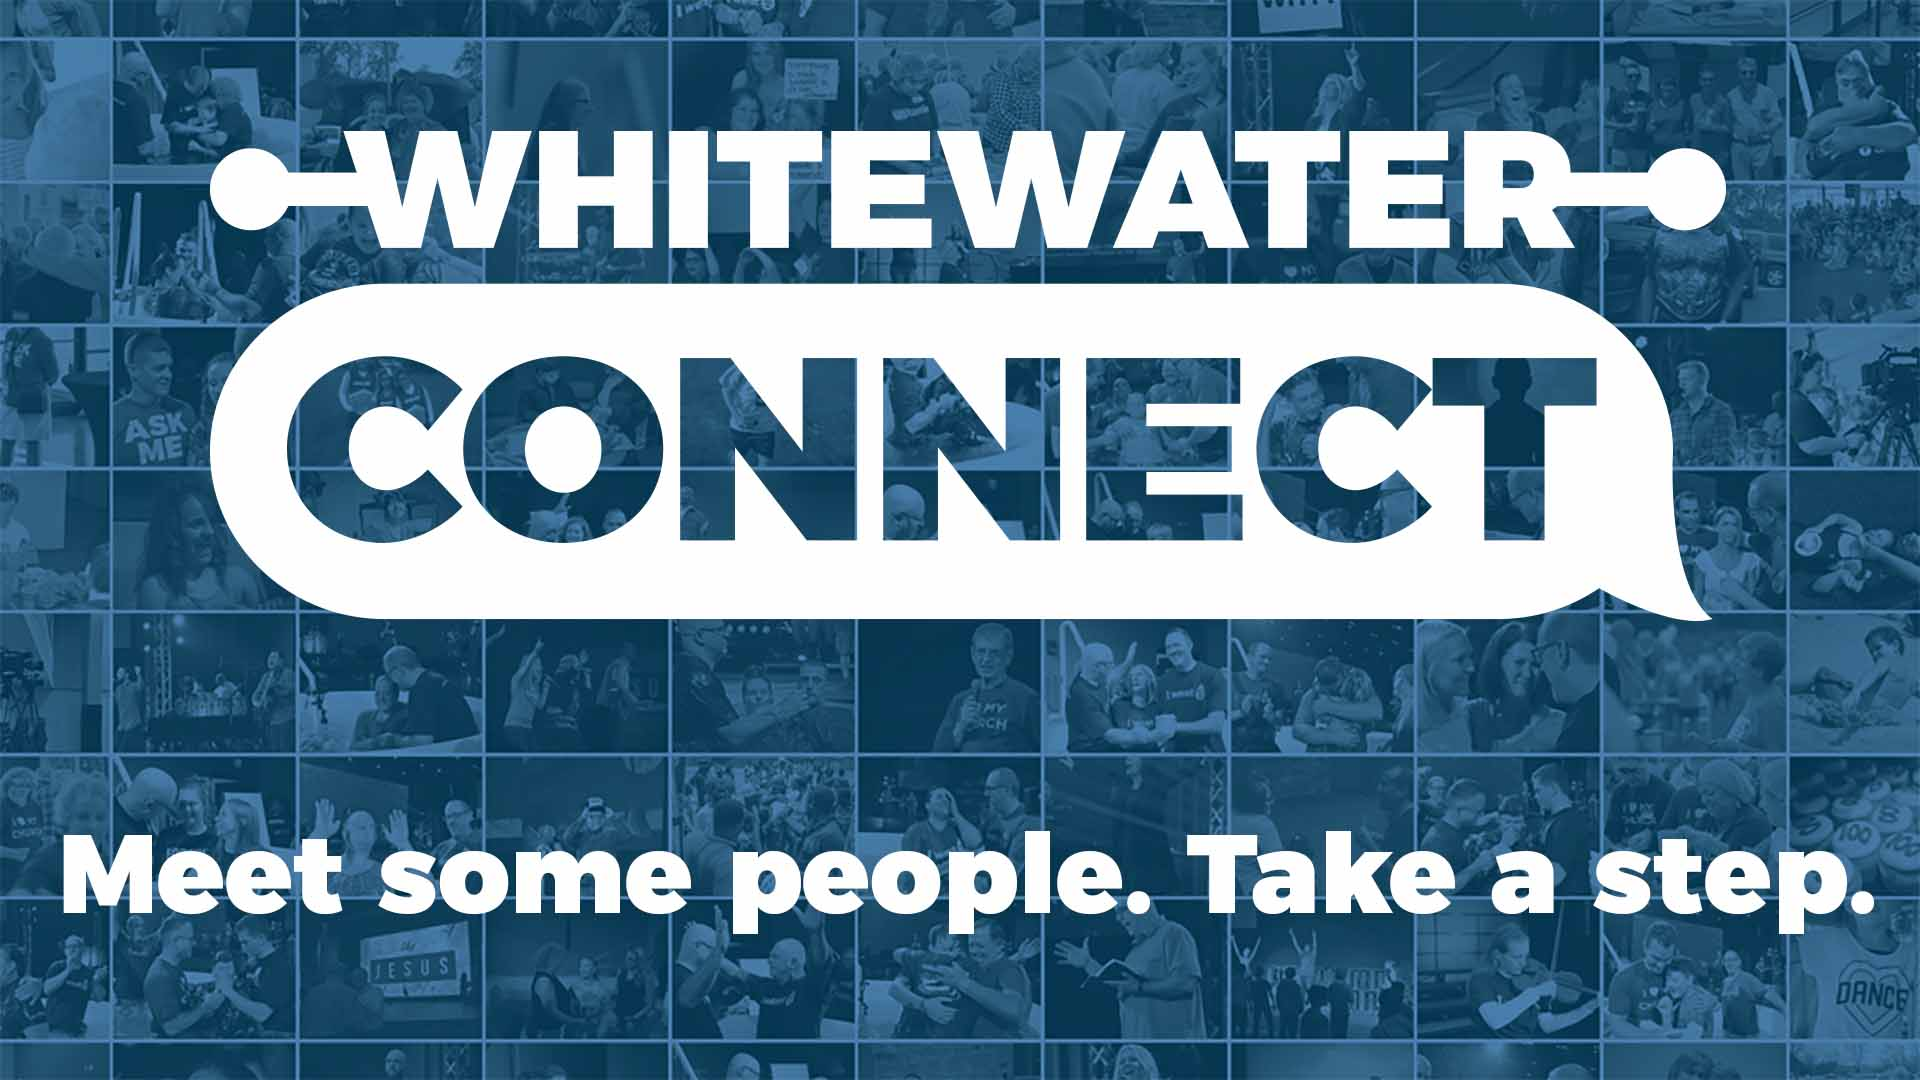 Whitewater Connect Web Home.jpg